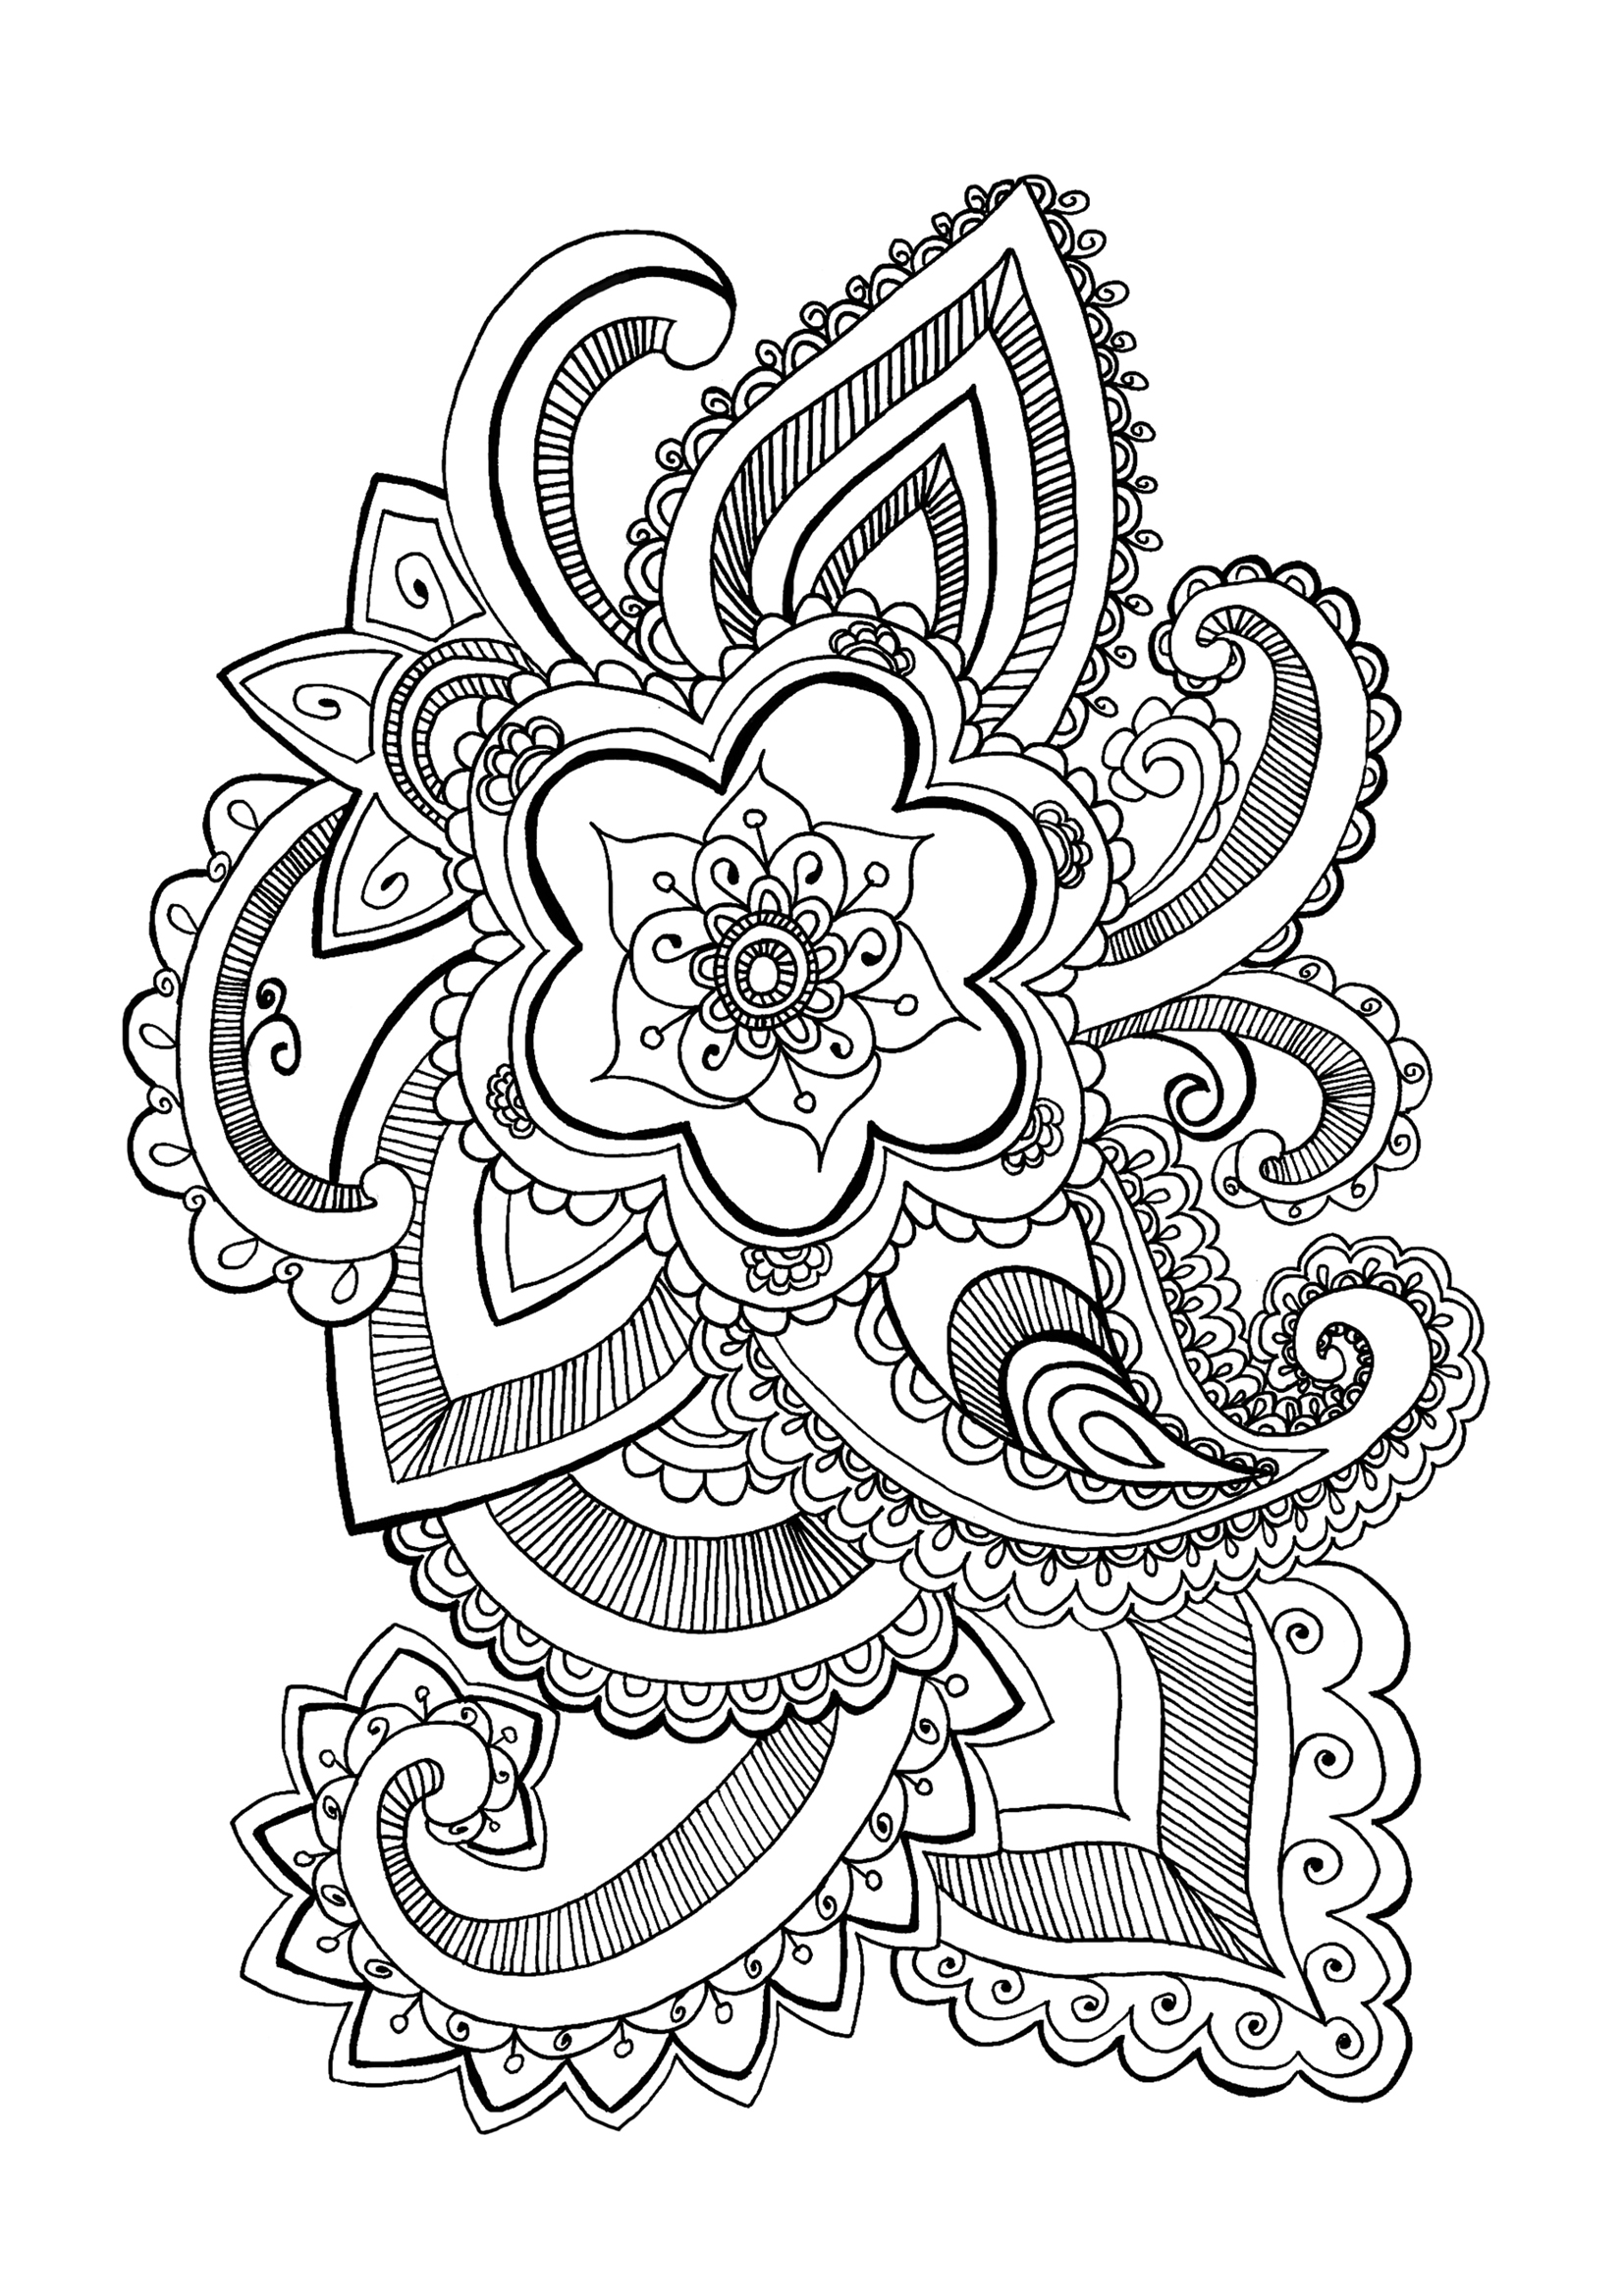 coloring pages for adults to print flowers free printable floral coloring page ausdruckbare adults coloring to print for pages flowers